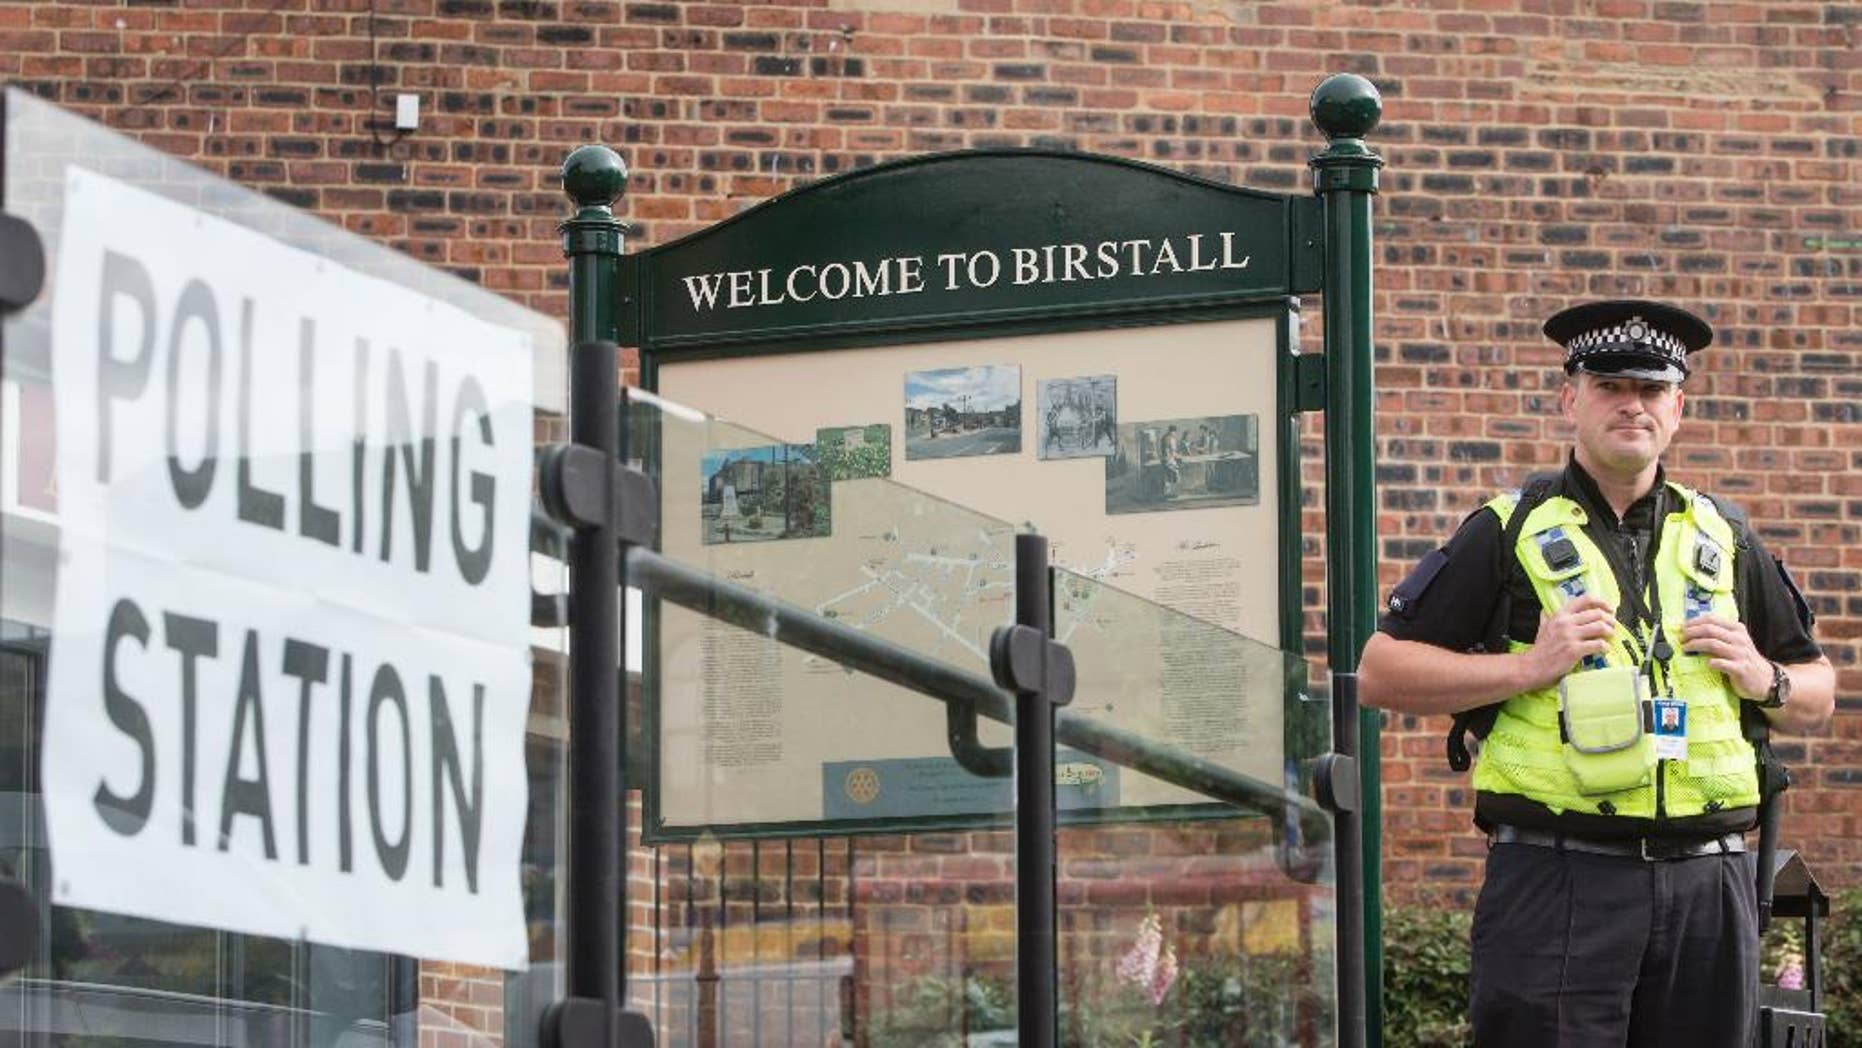 A police officer stands outside a polling station being used in the EU referendum at Birstall library, West Yorkshire, England Thursday June 23, 2016 near to where Labour MP Jo Cox was attacked and killed outside her constituency surgery. Voters in Britain are deciding Thursday whether the country should remain in the European Union. (Danny Lawson/PA via AP) UNITED KINGDOM OUT - NO SALES - NO ARCHIVE